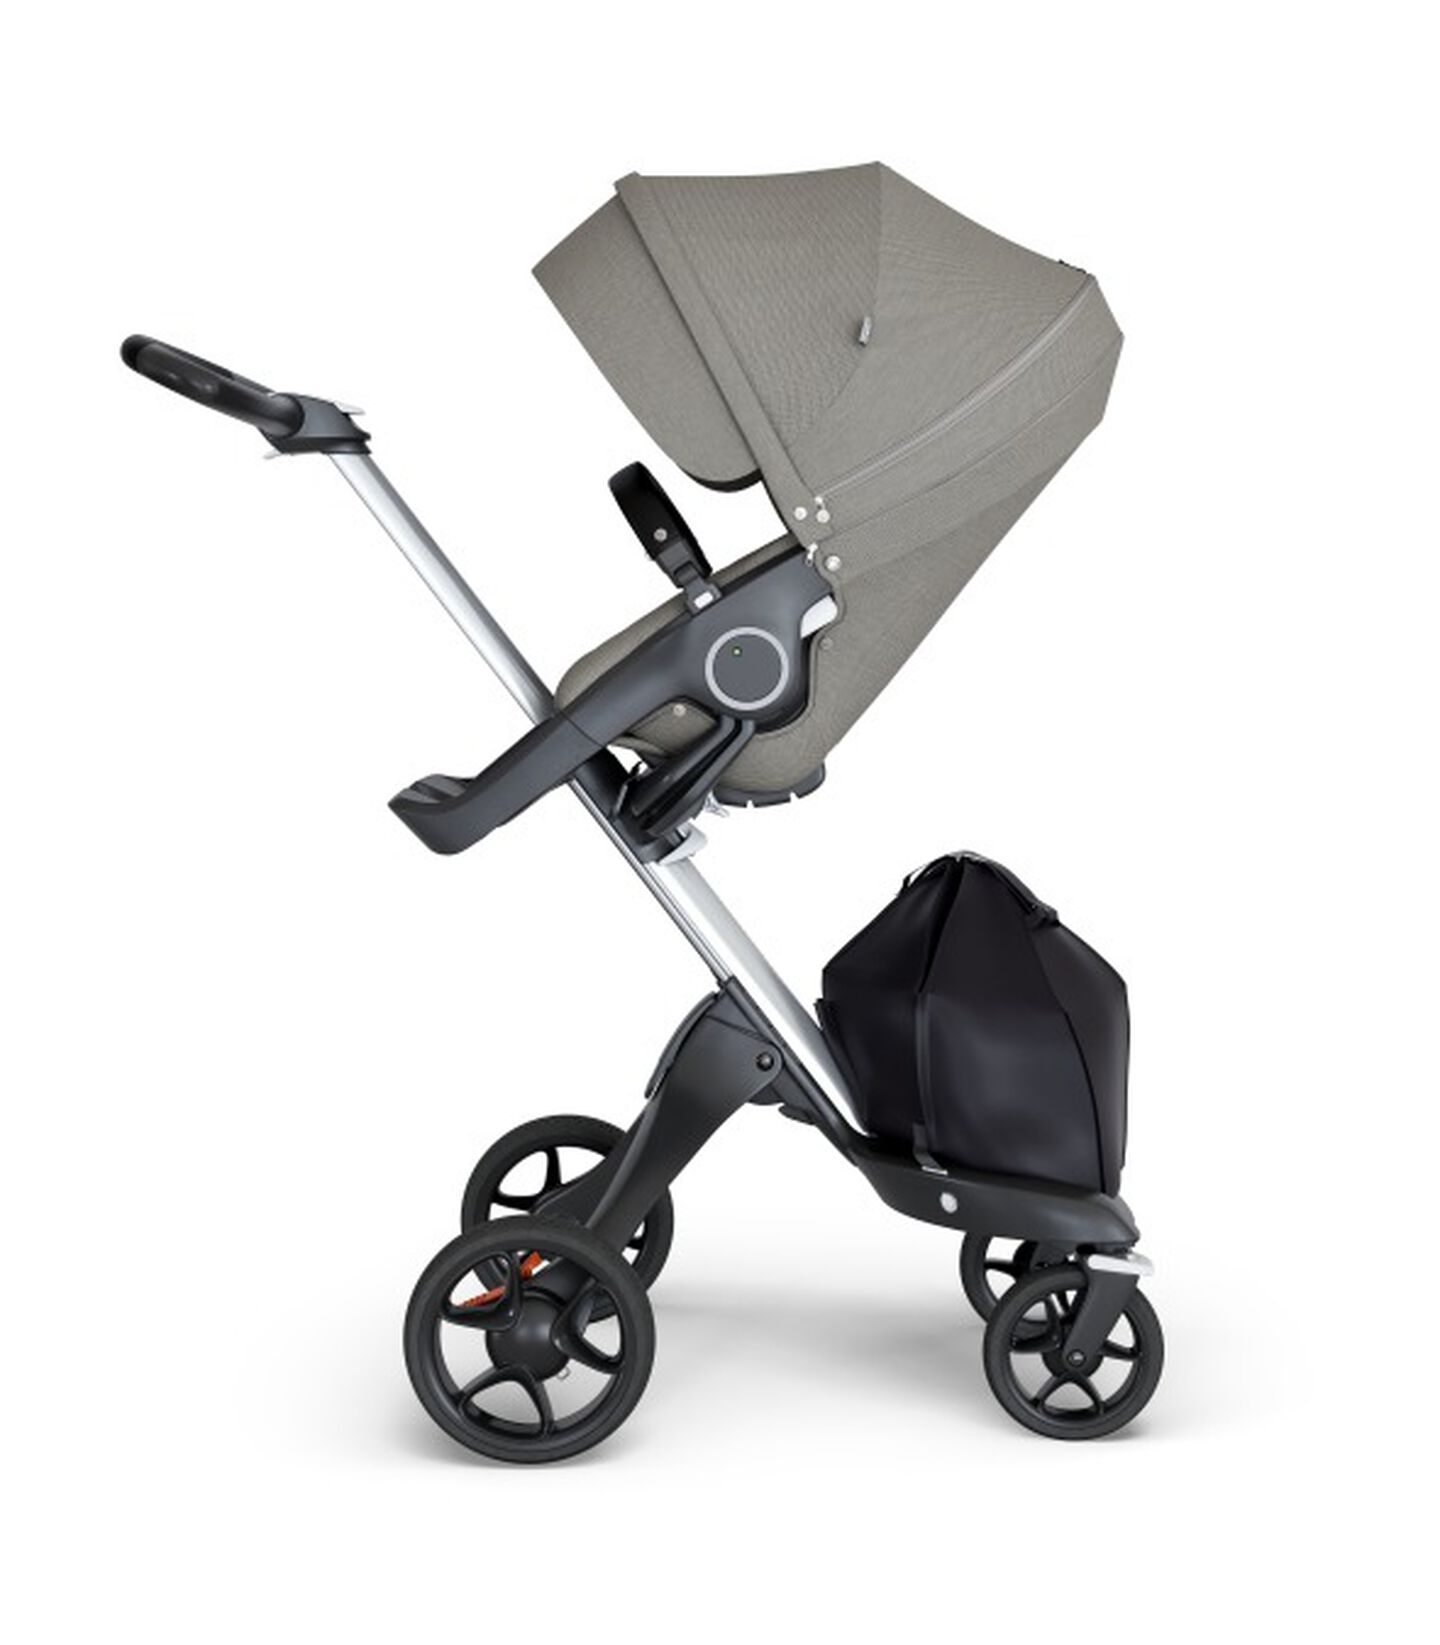 Stokke® Xplory® 6 Silver Chassis - Black Handle Brushed Grey, Gris, mainview view 2